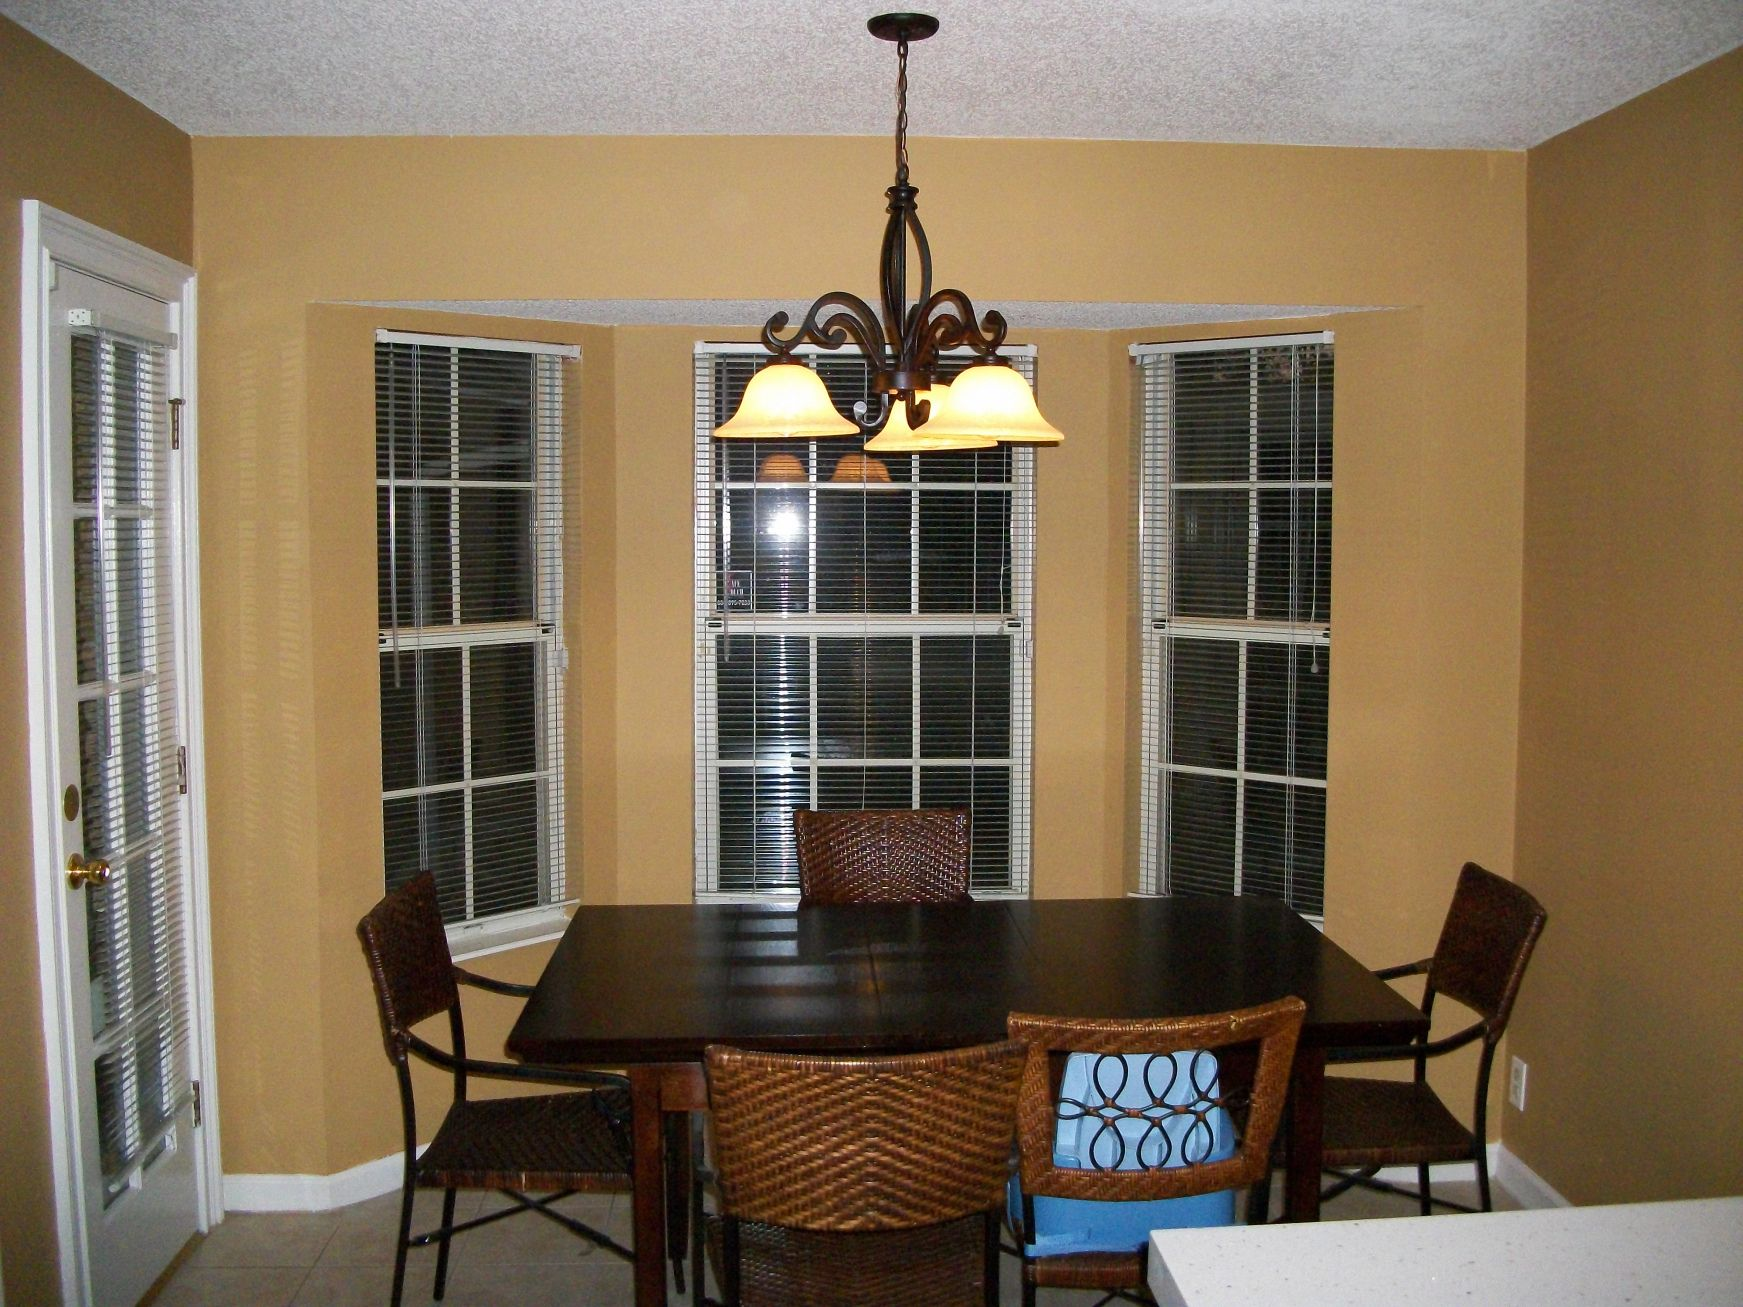 Tiffany Dining Room Light Interior Paint Color Schemes Check More At Http Livelylighting